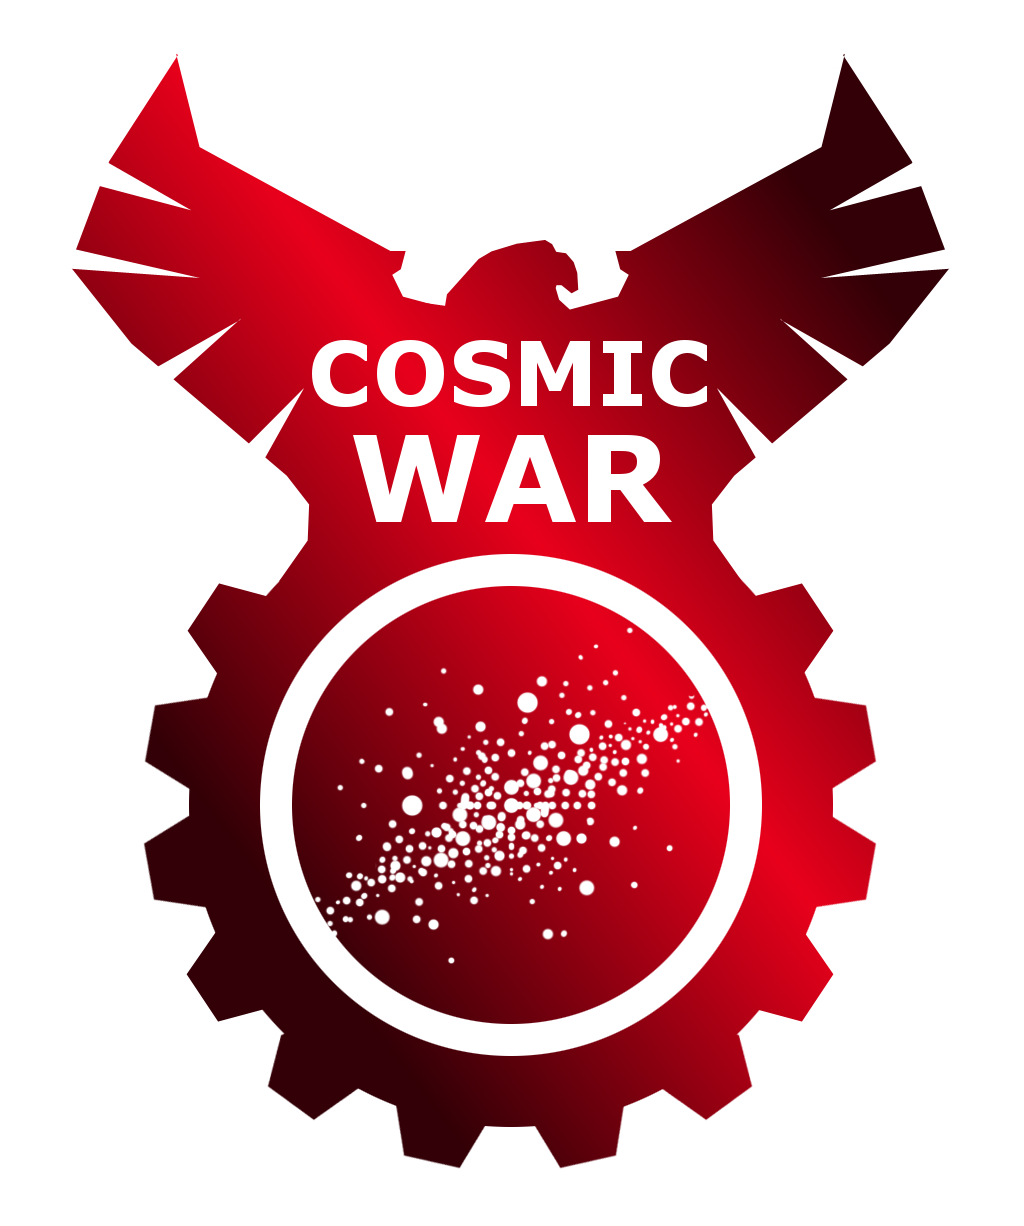 Cosmic War red.png